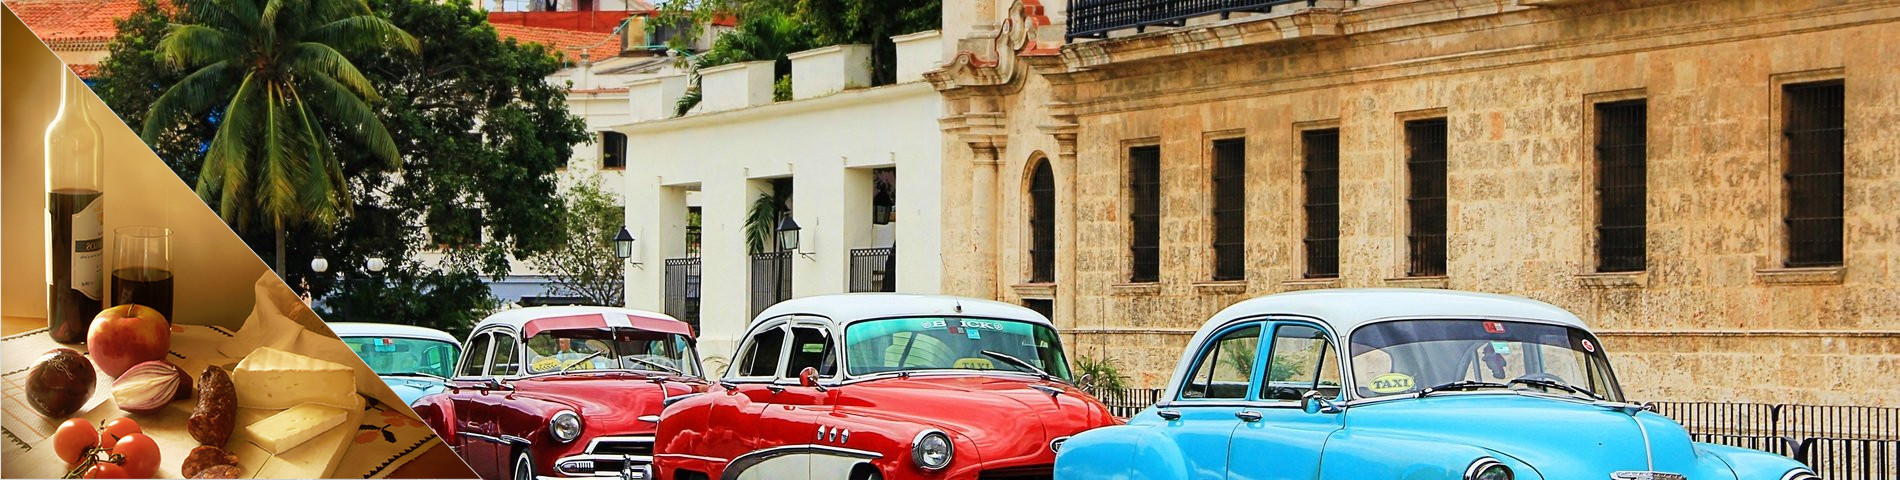 Havana - Spanish & Culture